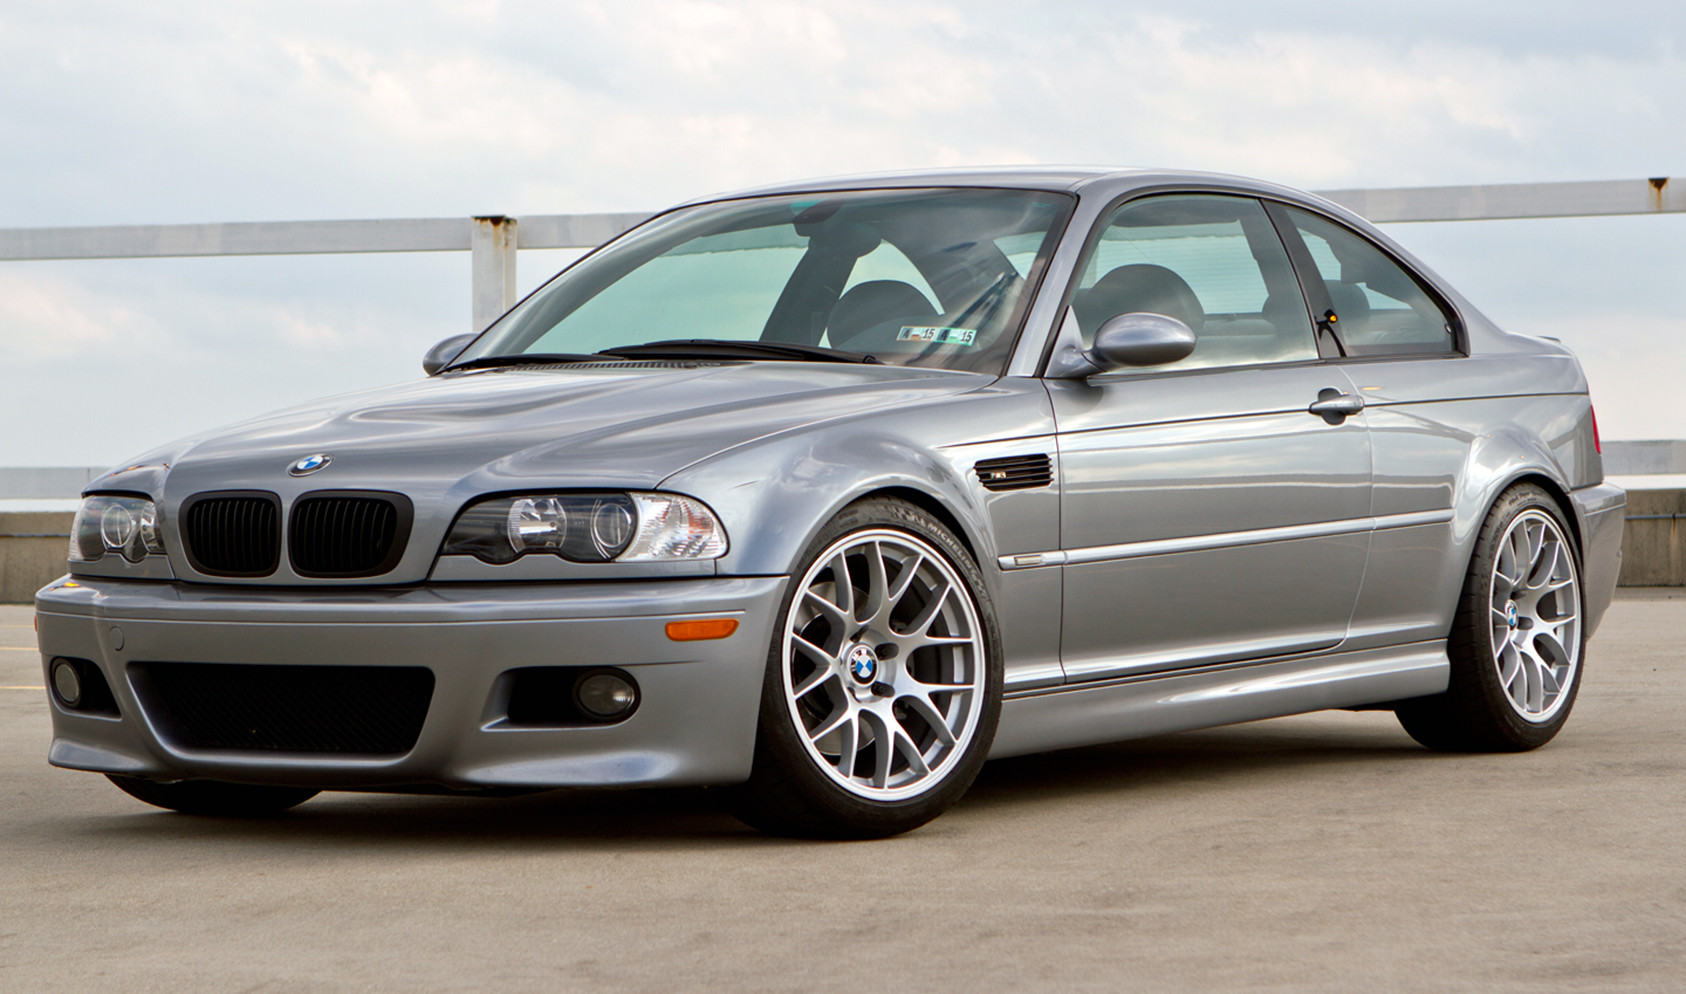 "E46 M3<br />Wheels: 18x10"" ET33 Race Silver EC-7<br />Tires: 265/35-18 Michelin Pilot Super Sport<br />Mods: 12mm front spacers, 15mm rear spacers"